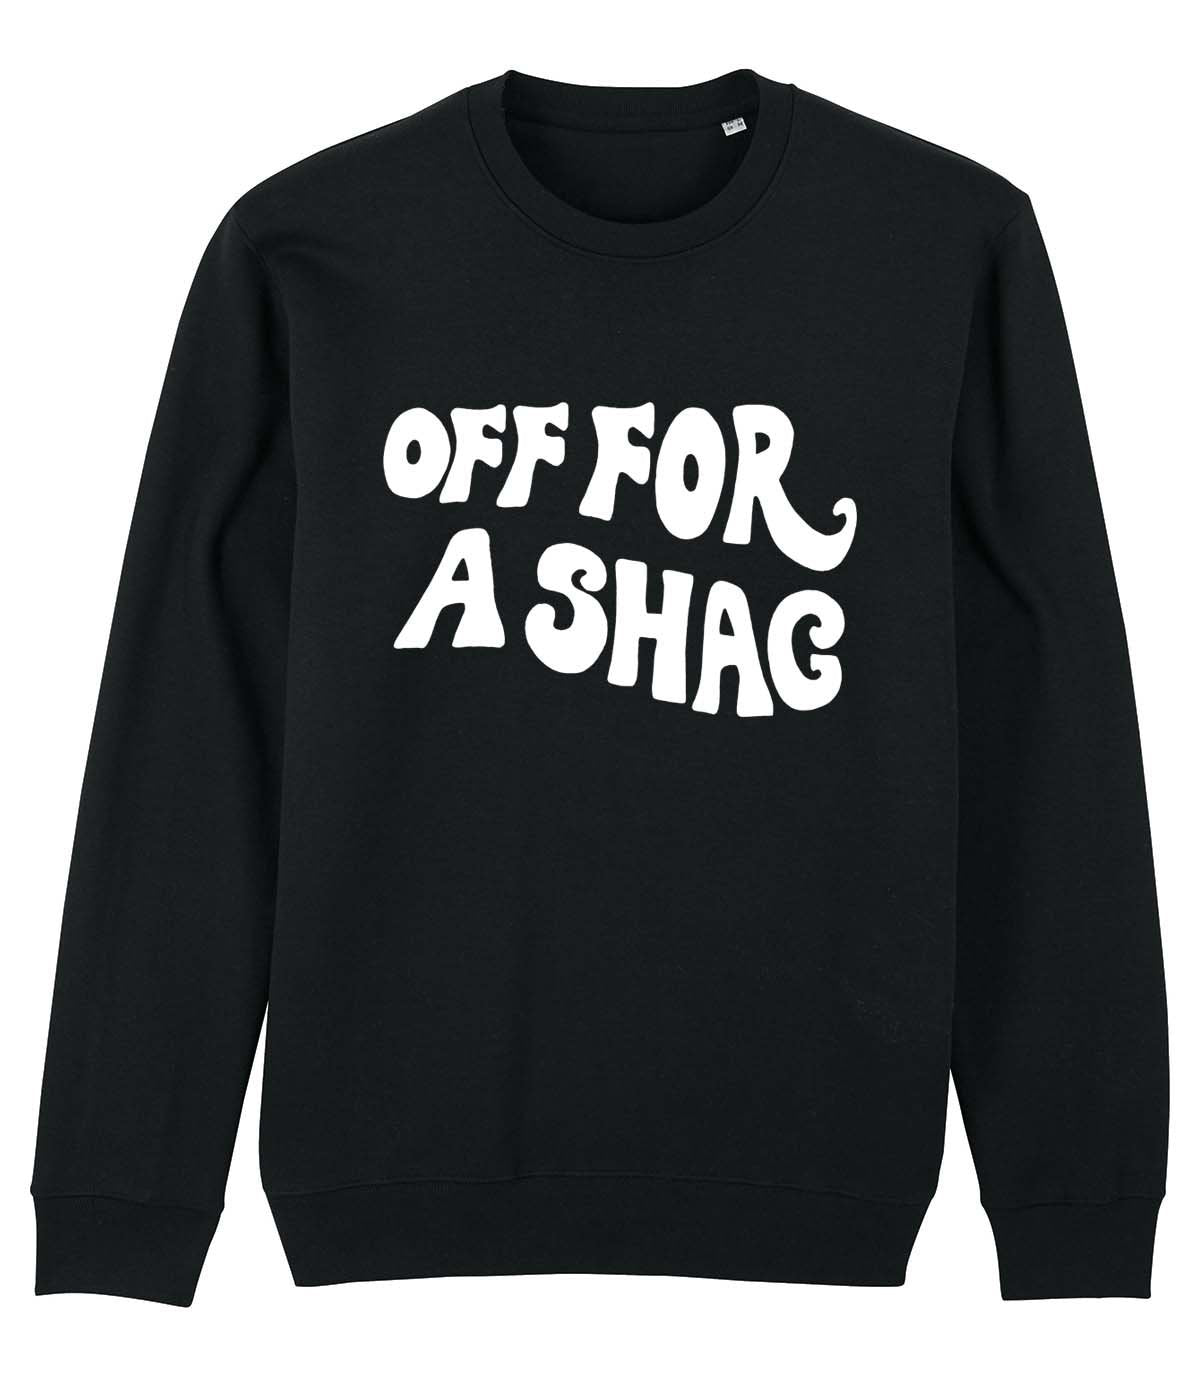 Off For A Shag - Sweatshirt